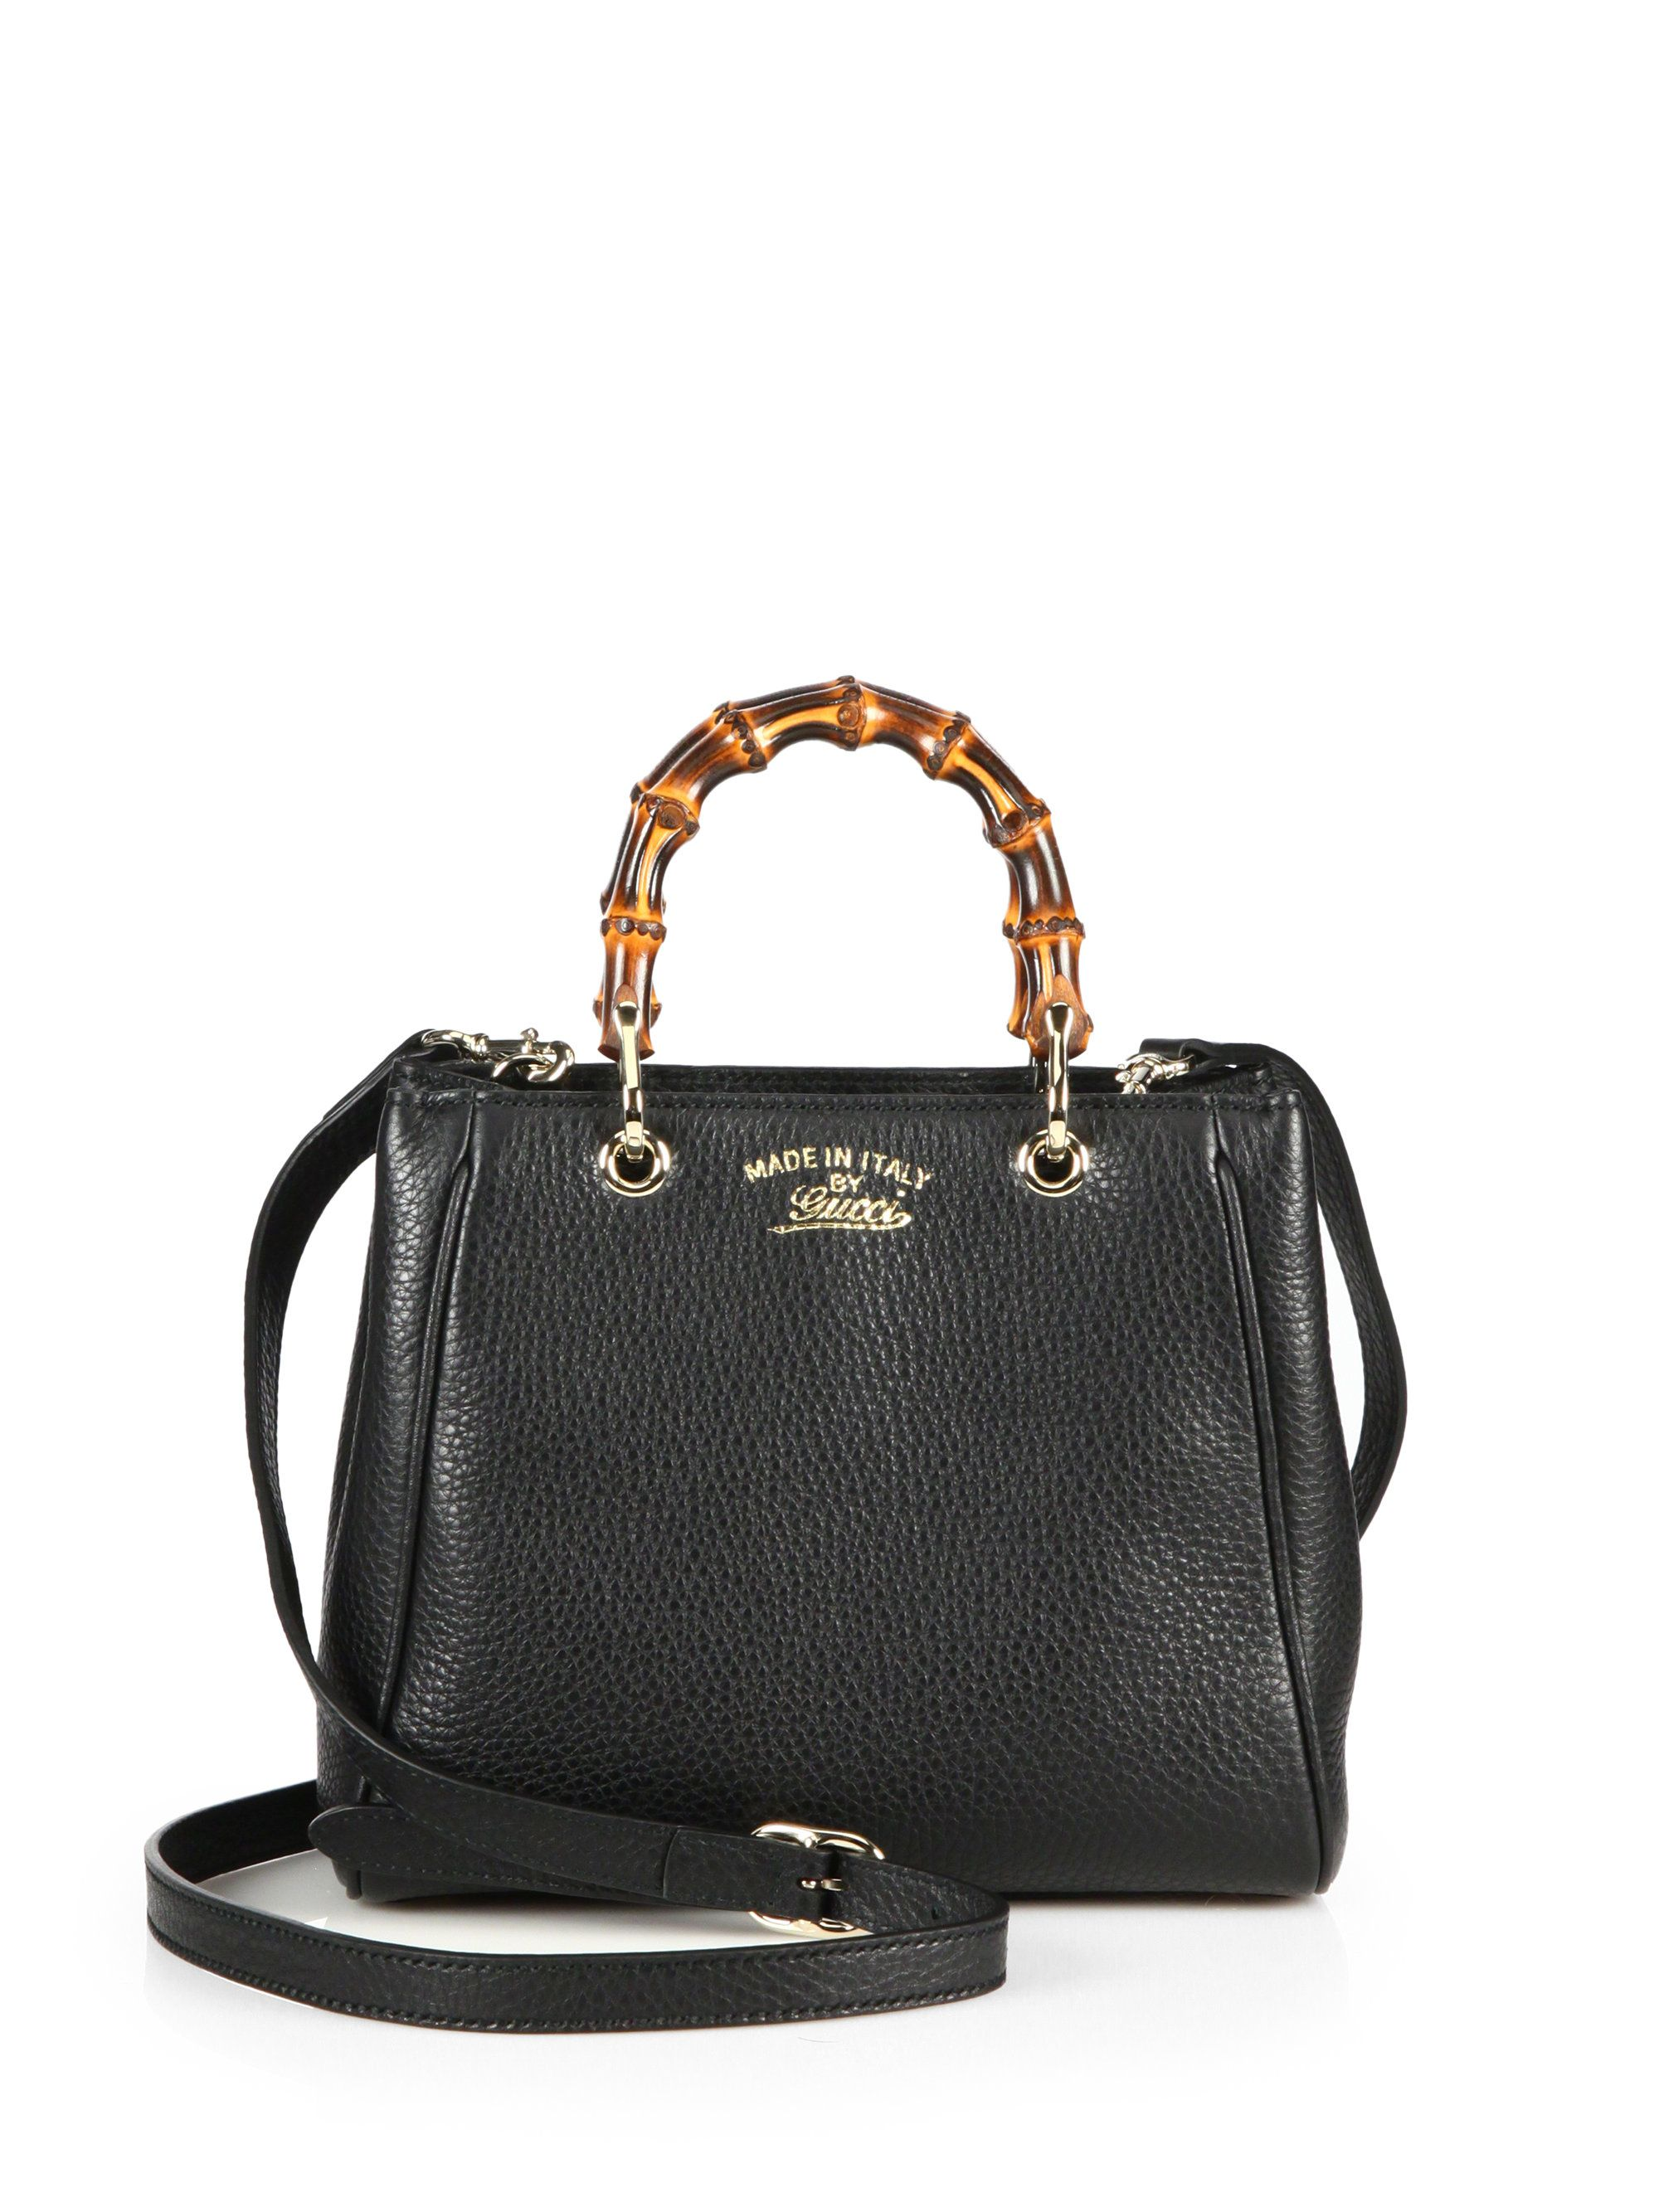 Gucci Bamboo Shopper Mini Leather Top Handle Bag in Black (NERO-BLACK)  59e192d81420f